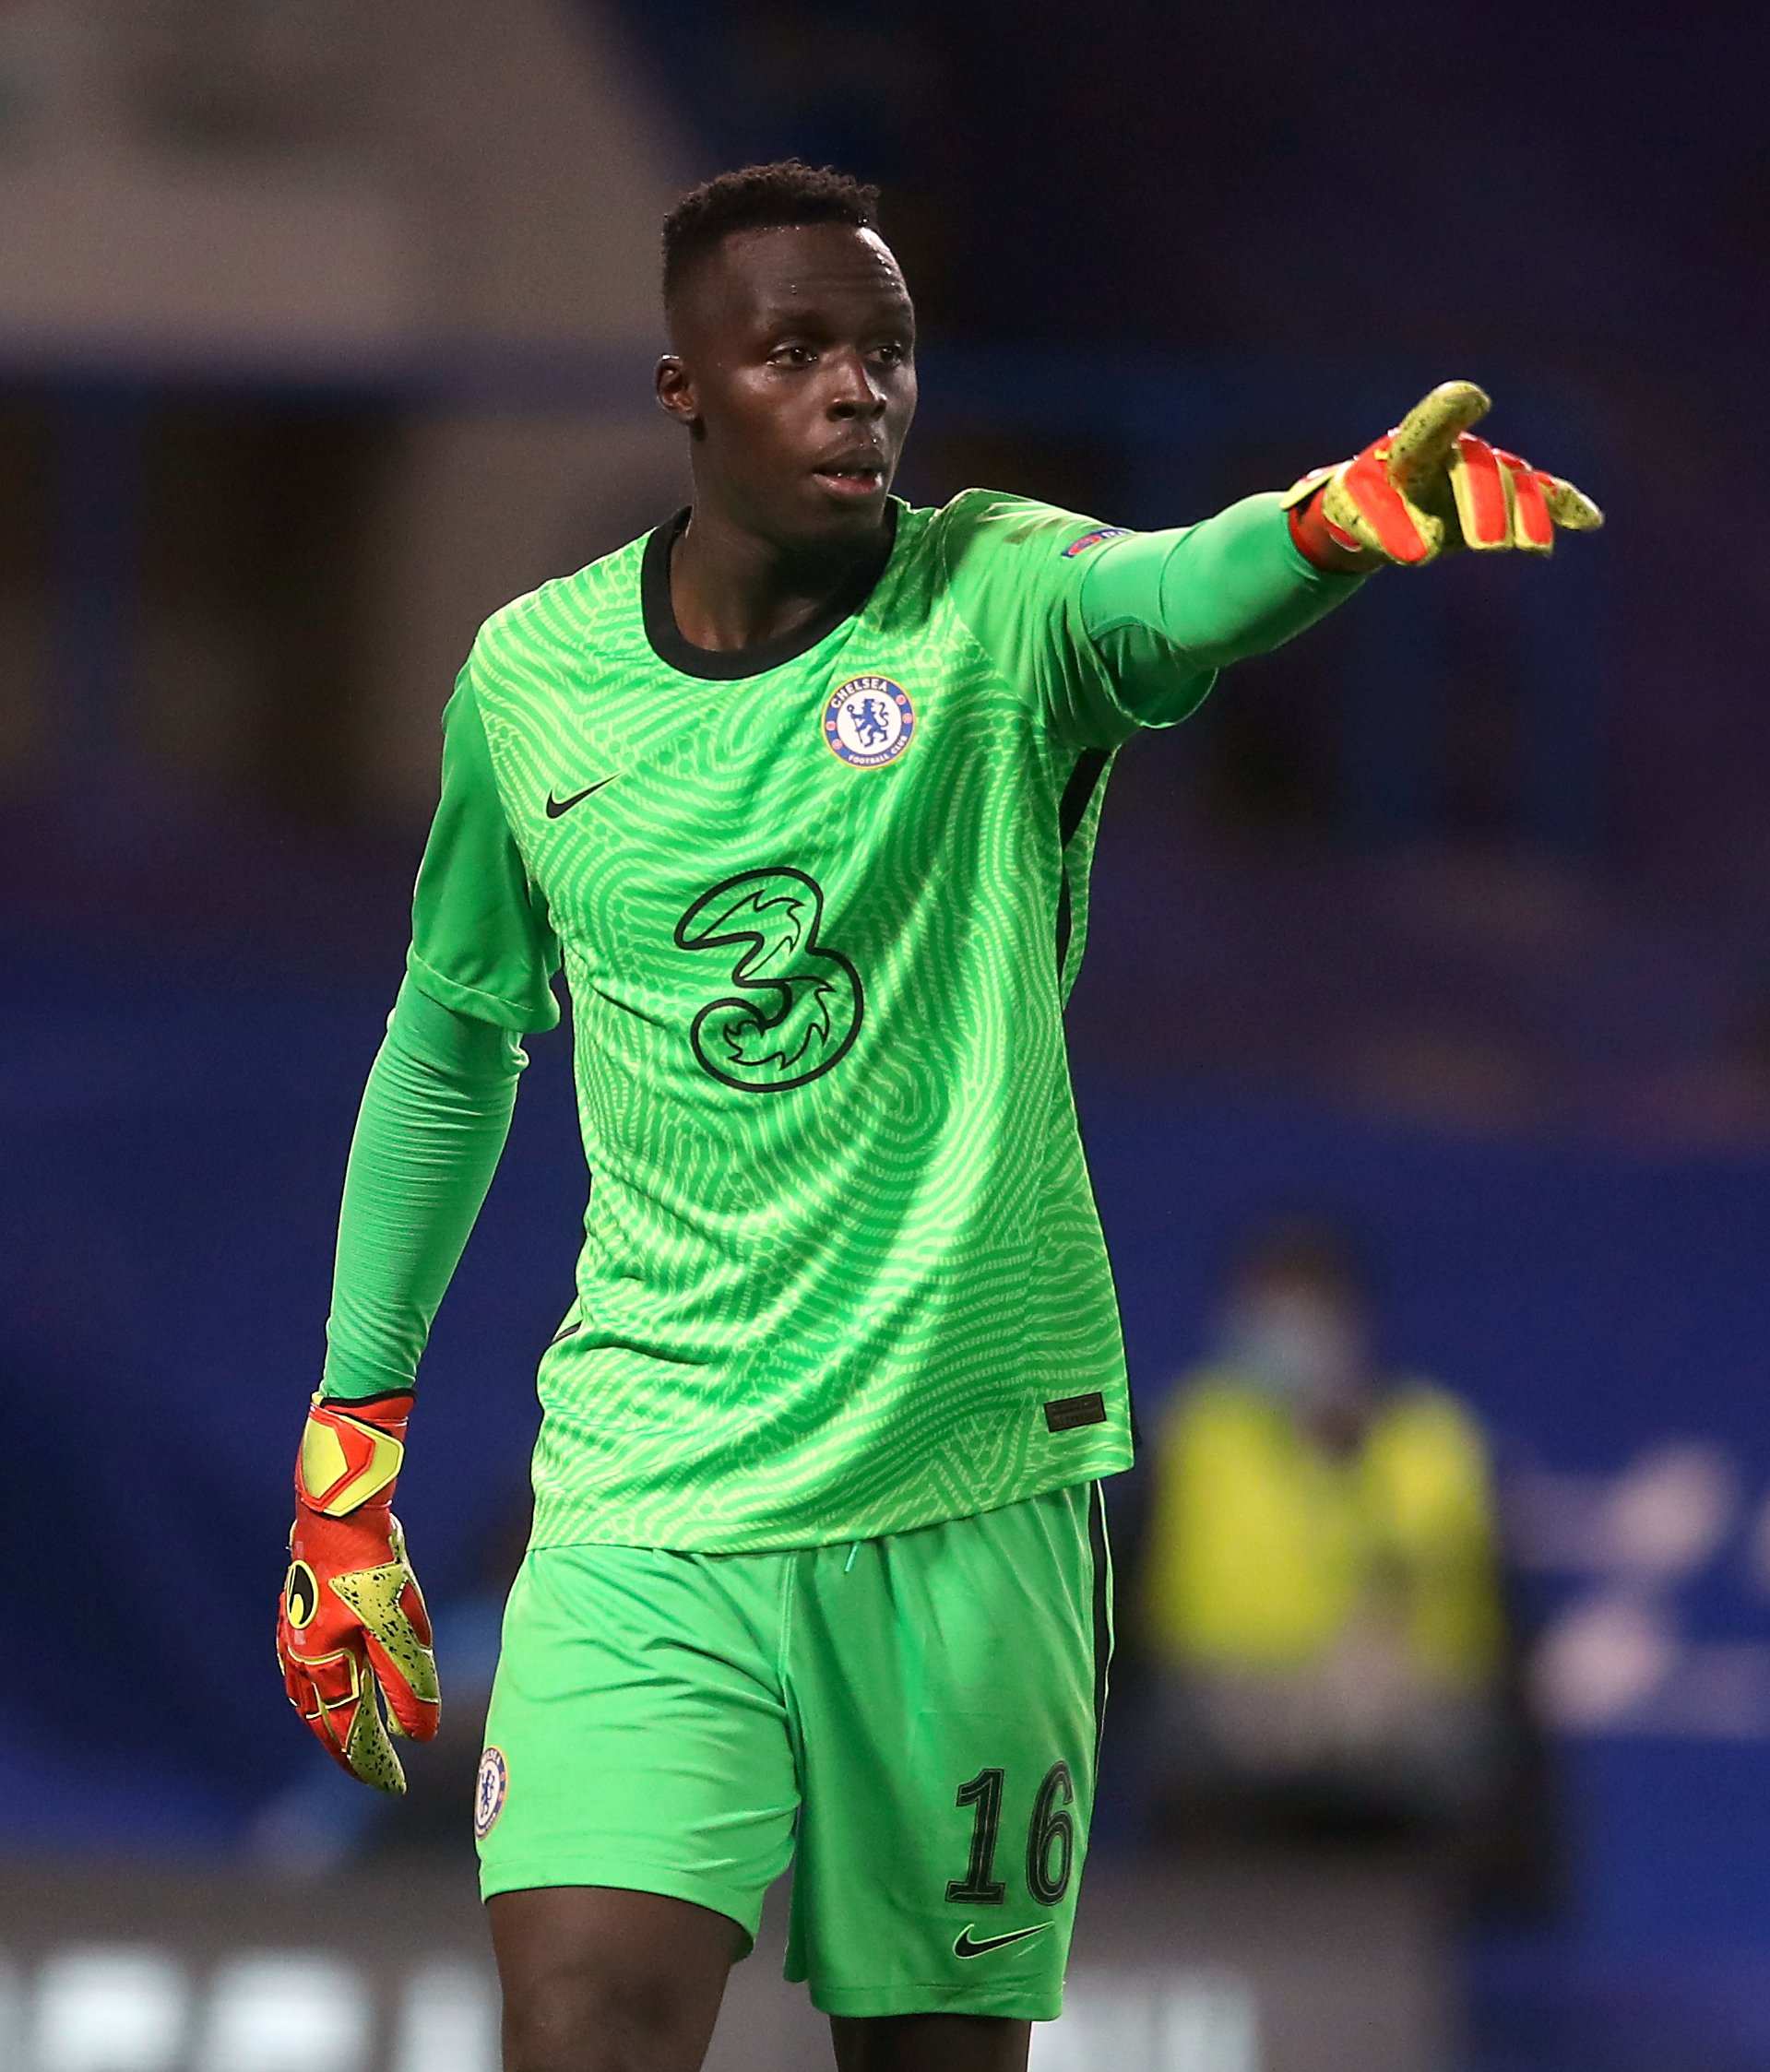 MENDY SET TO FOLLOW CECH FOOTSTEPS